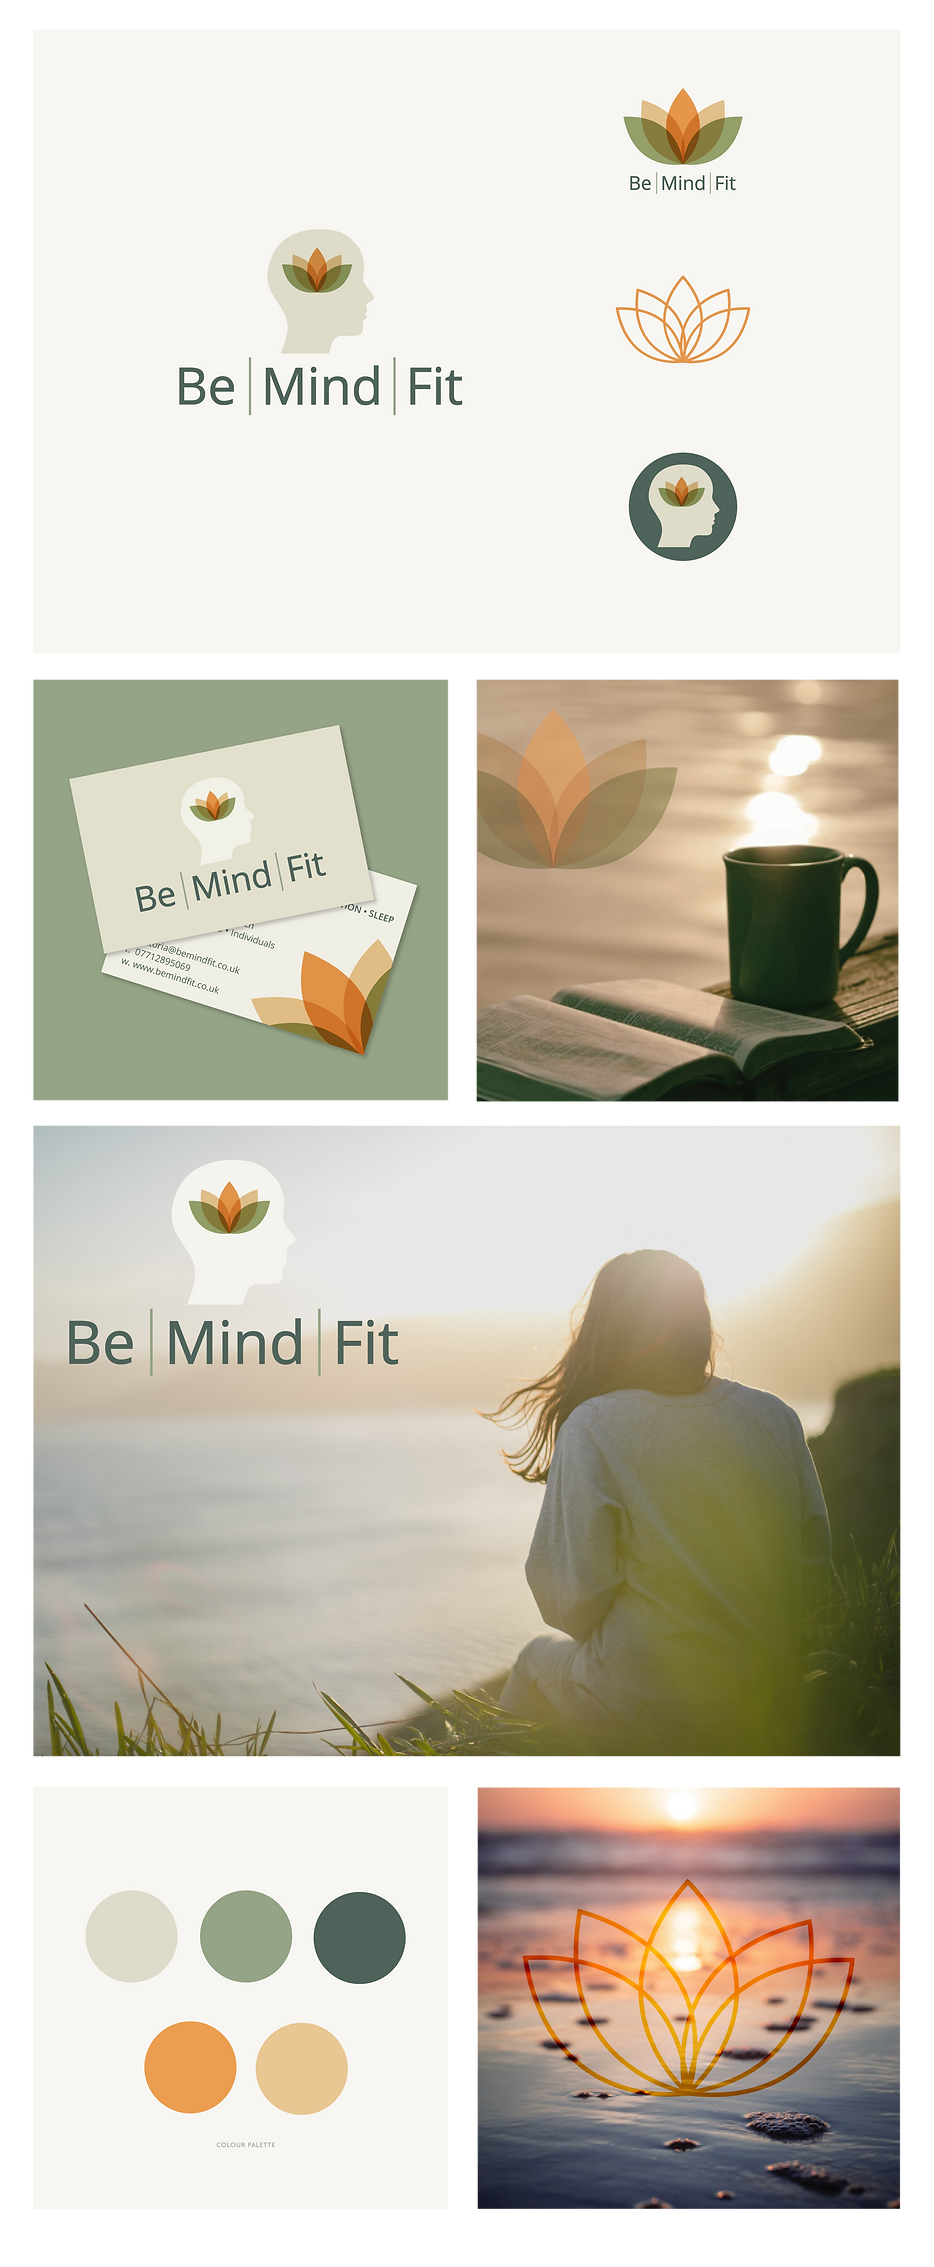 Be Mind Fit branding-01.png